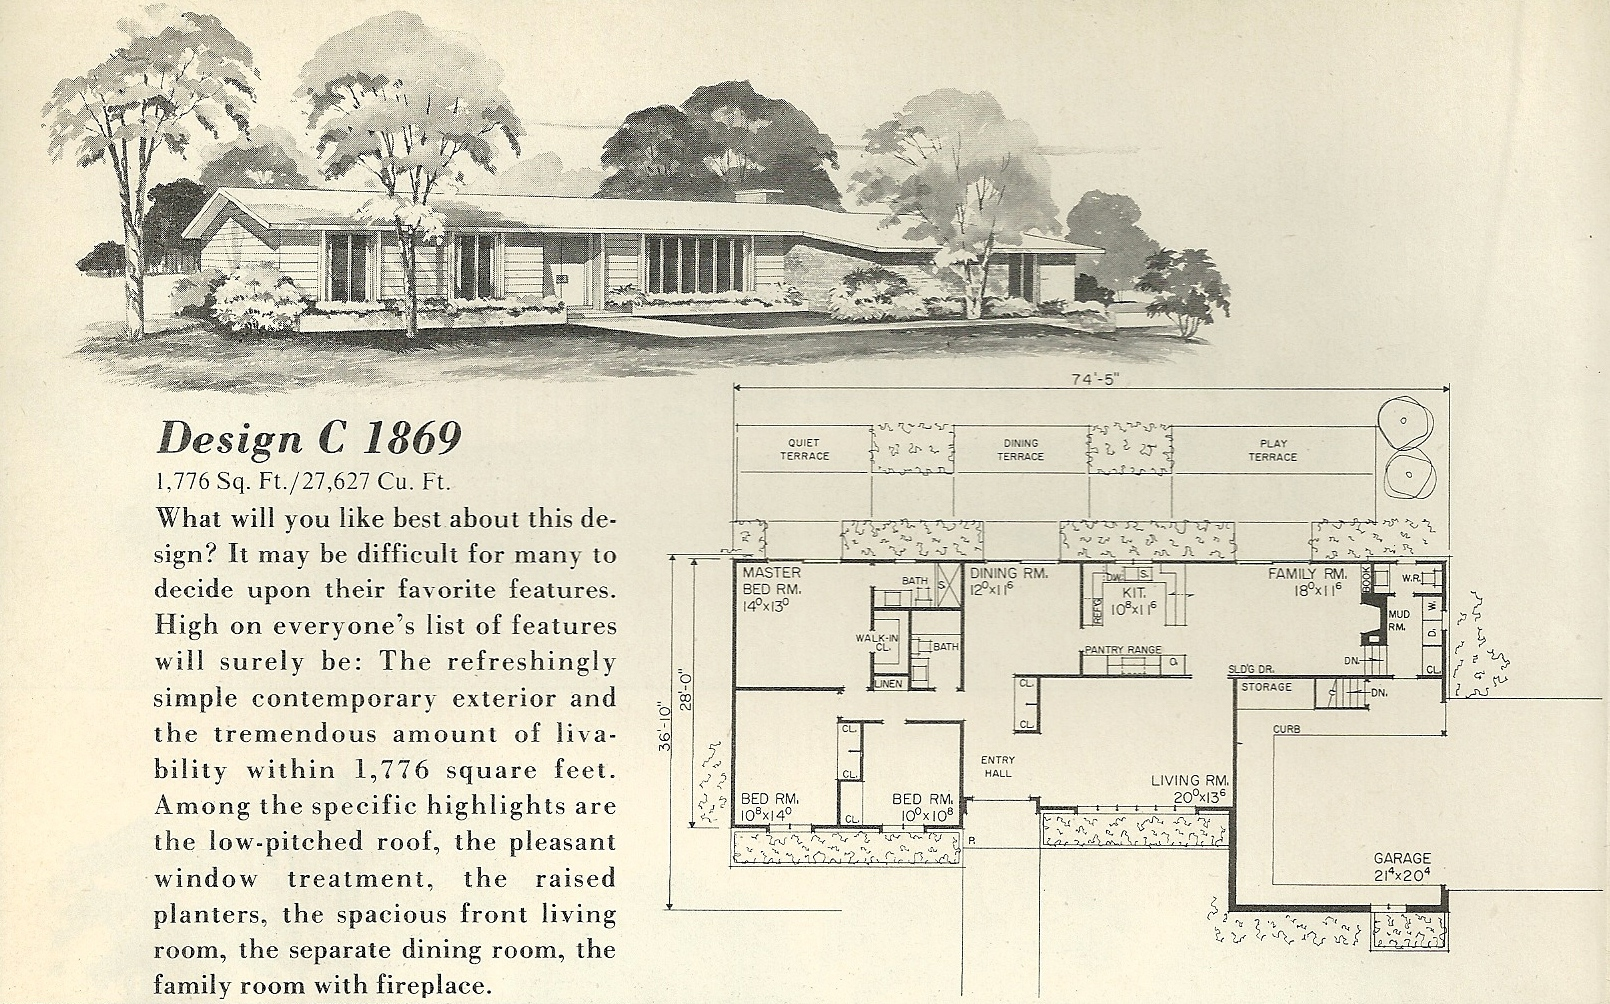 Vintage house plans 1869 antique alter ego for Mid century modern home floor plans